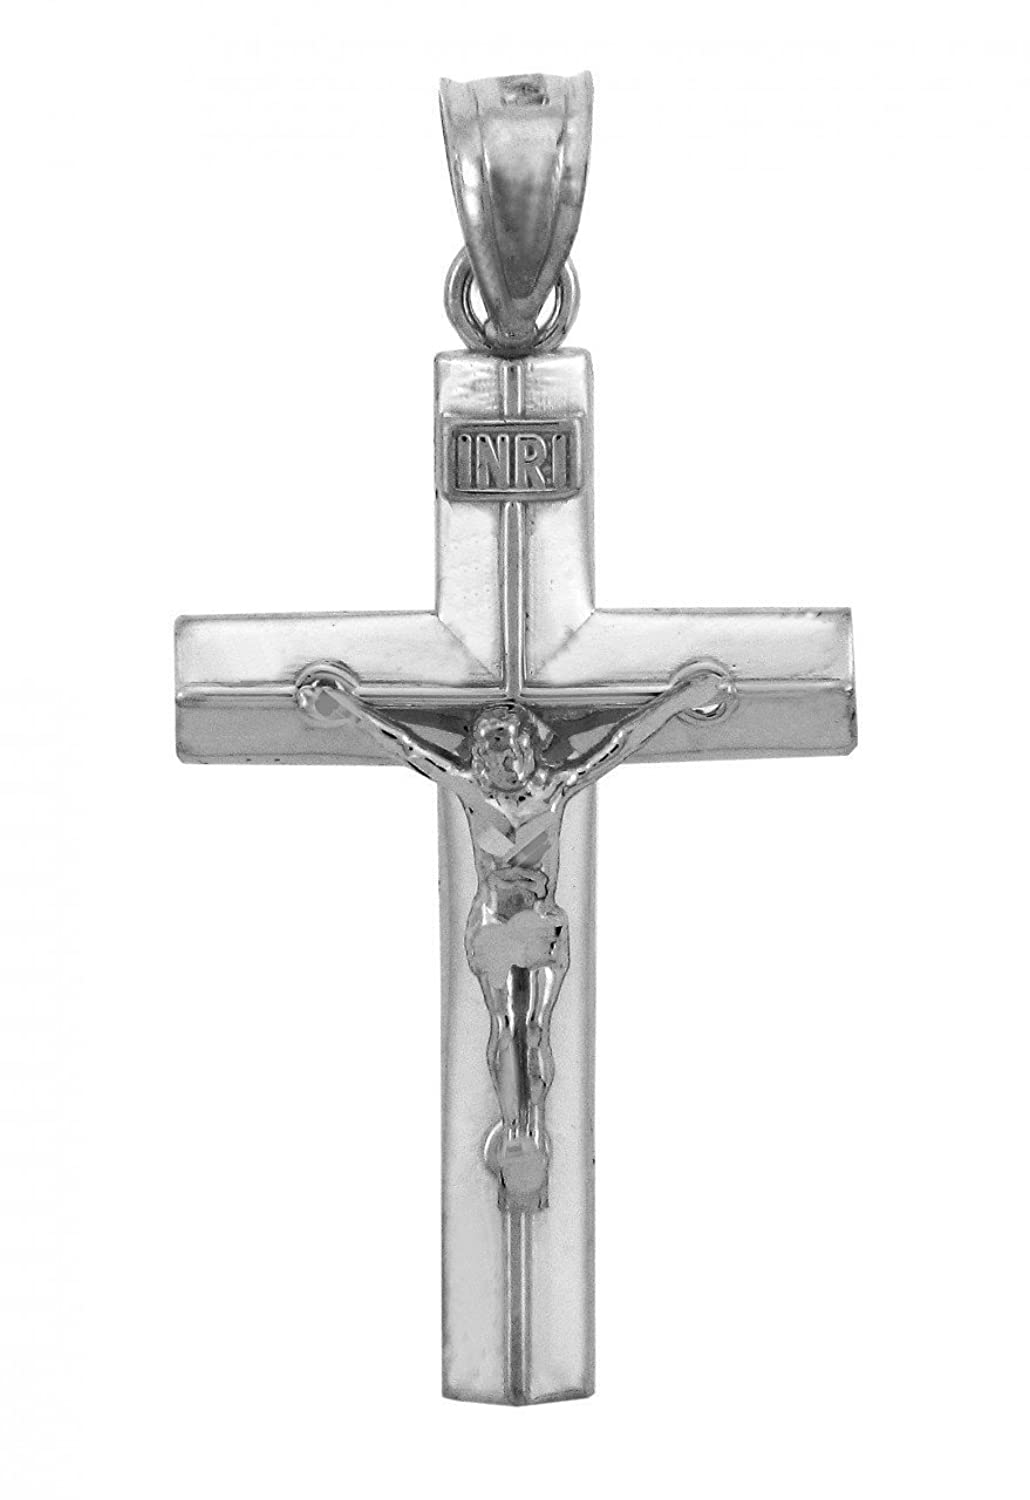 Solid 14k White Gold Linear Cross Charm INRI Crucifix Pendant